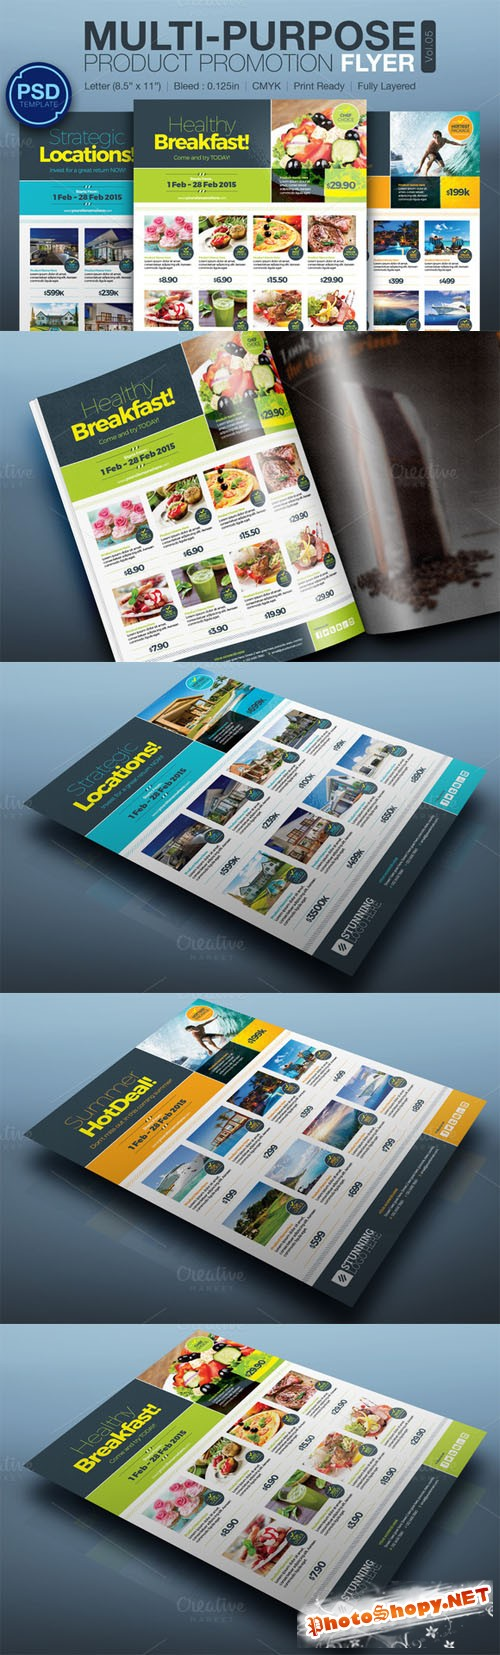 Multipurpose Product Promotion Flyer - Creativemarket 162612